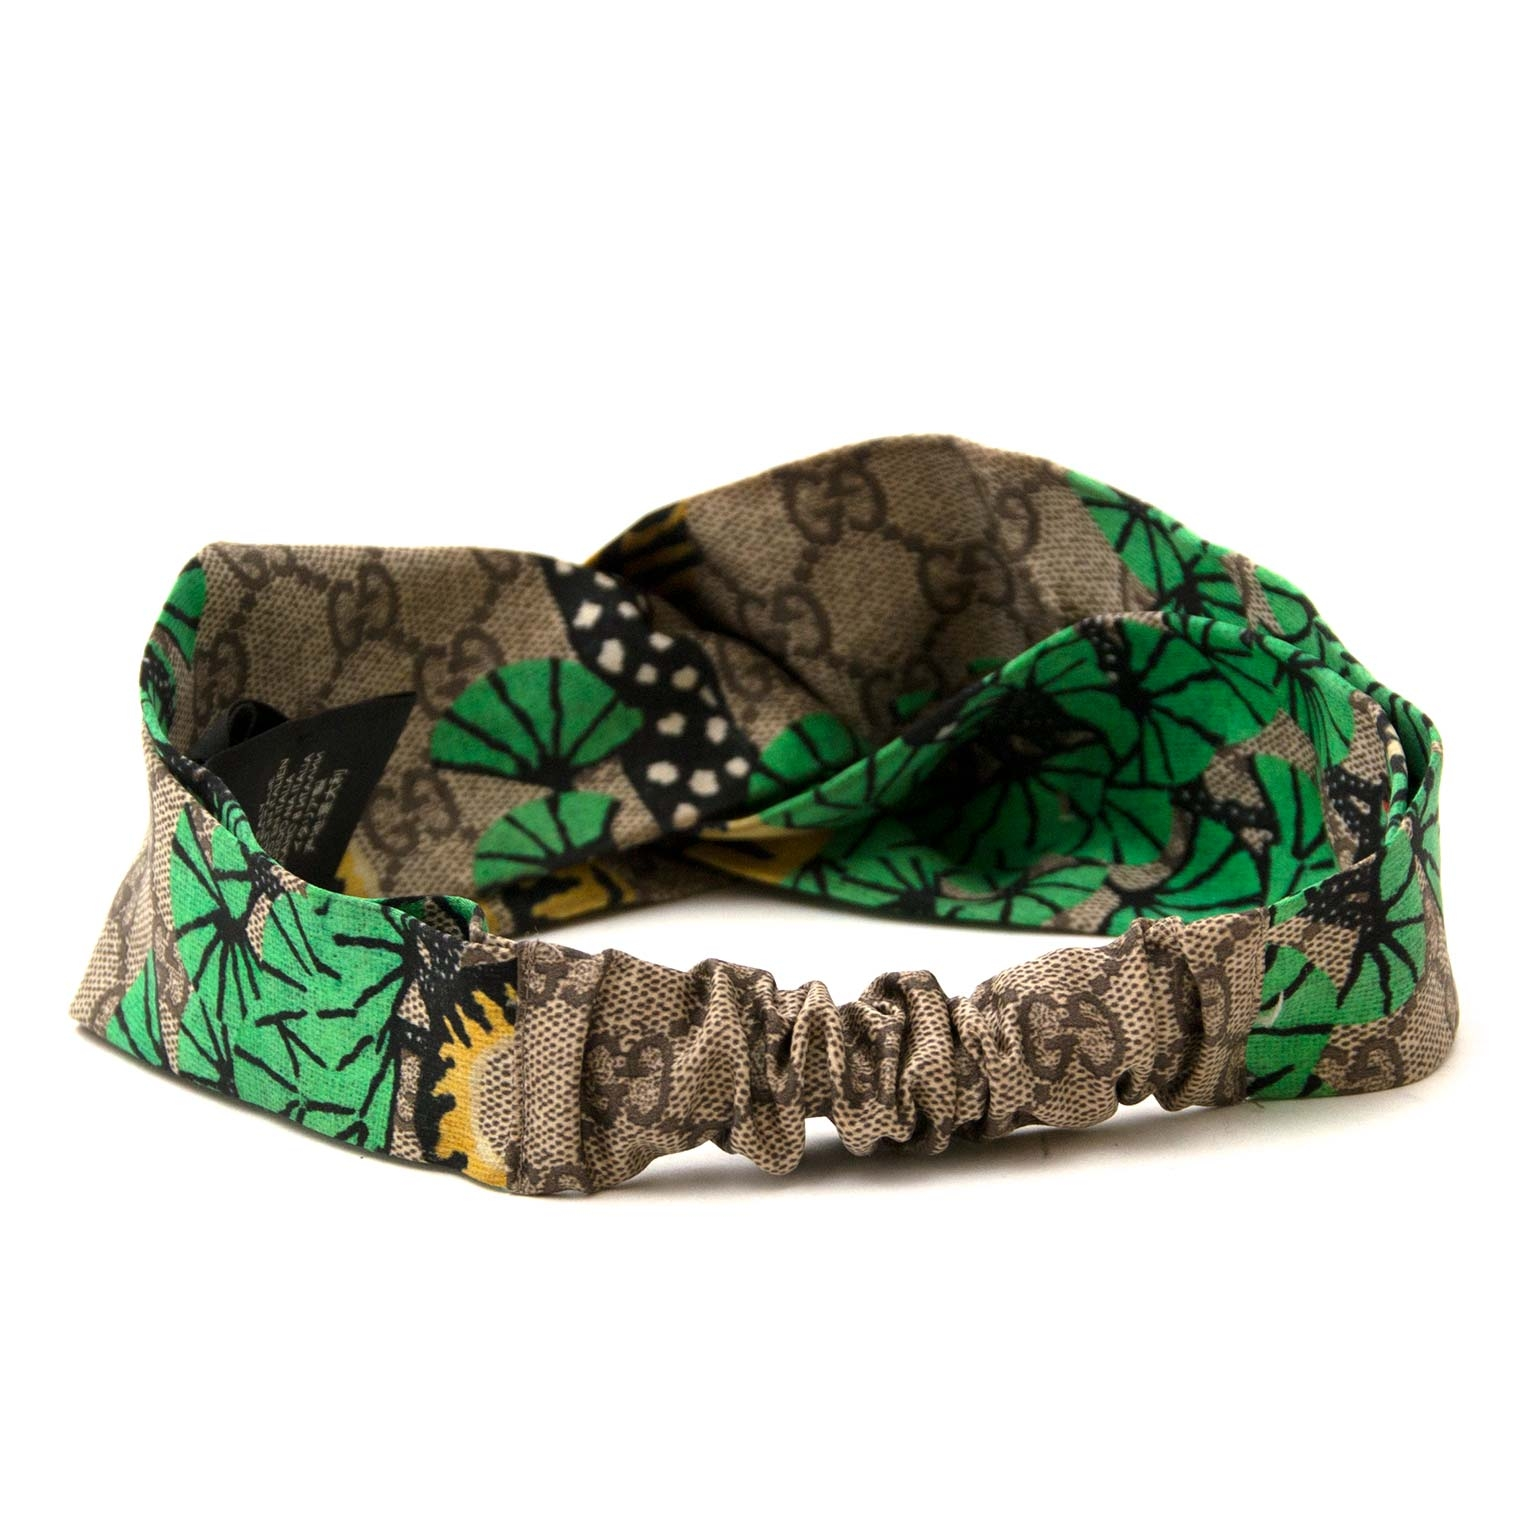 5729e5f592b Buy authentic Gucci accessories now online at Labellov webshop Belgium Buy authentic  Gucci headband now online at Labellov vintage webshop